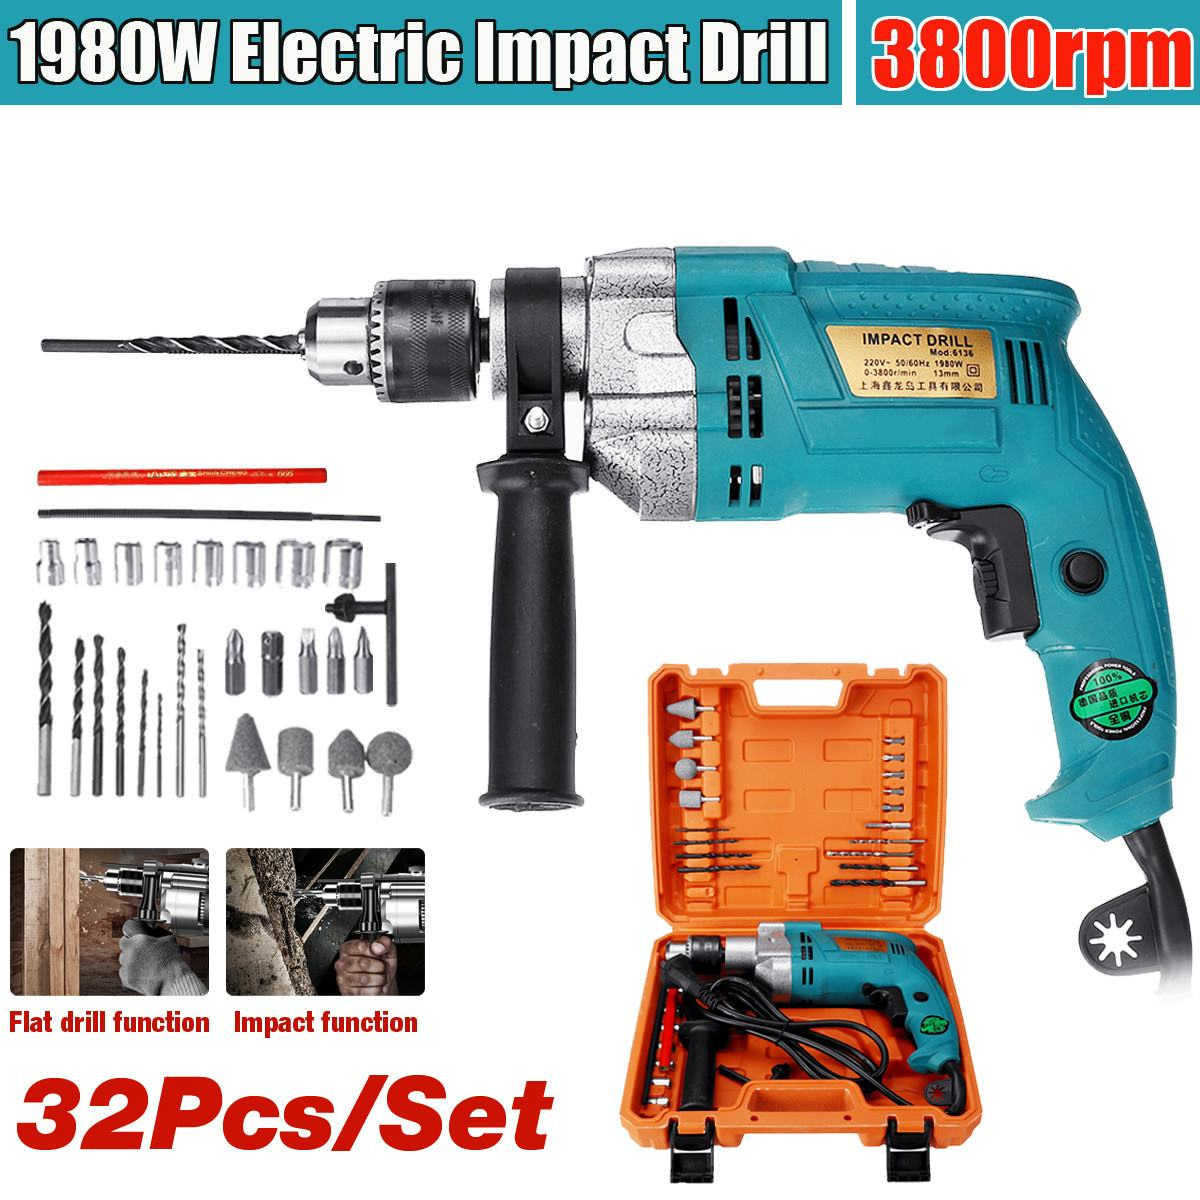 1980W 32Pcs Electric Brushless Impact Drill Drilling Guns Impact Electric Drill Electric Rotary Hammer Torque Driver Tool